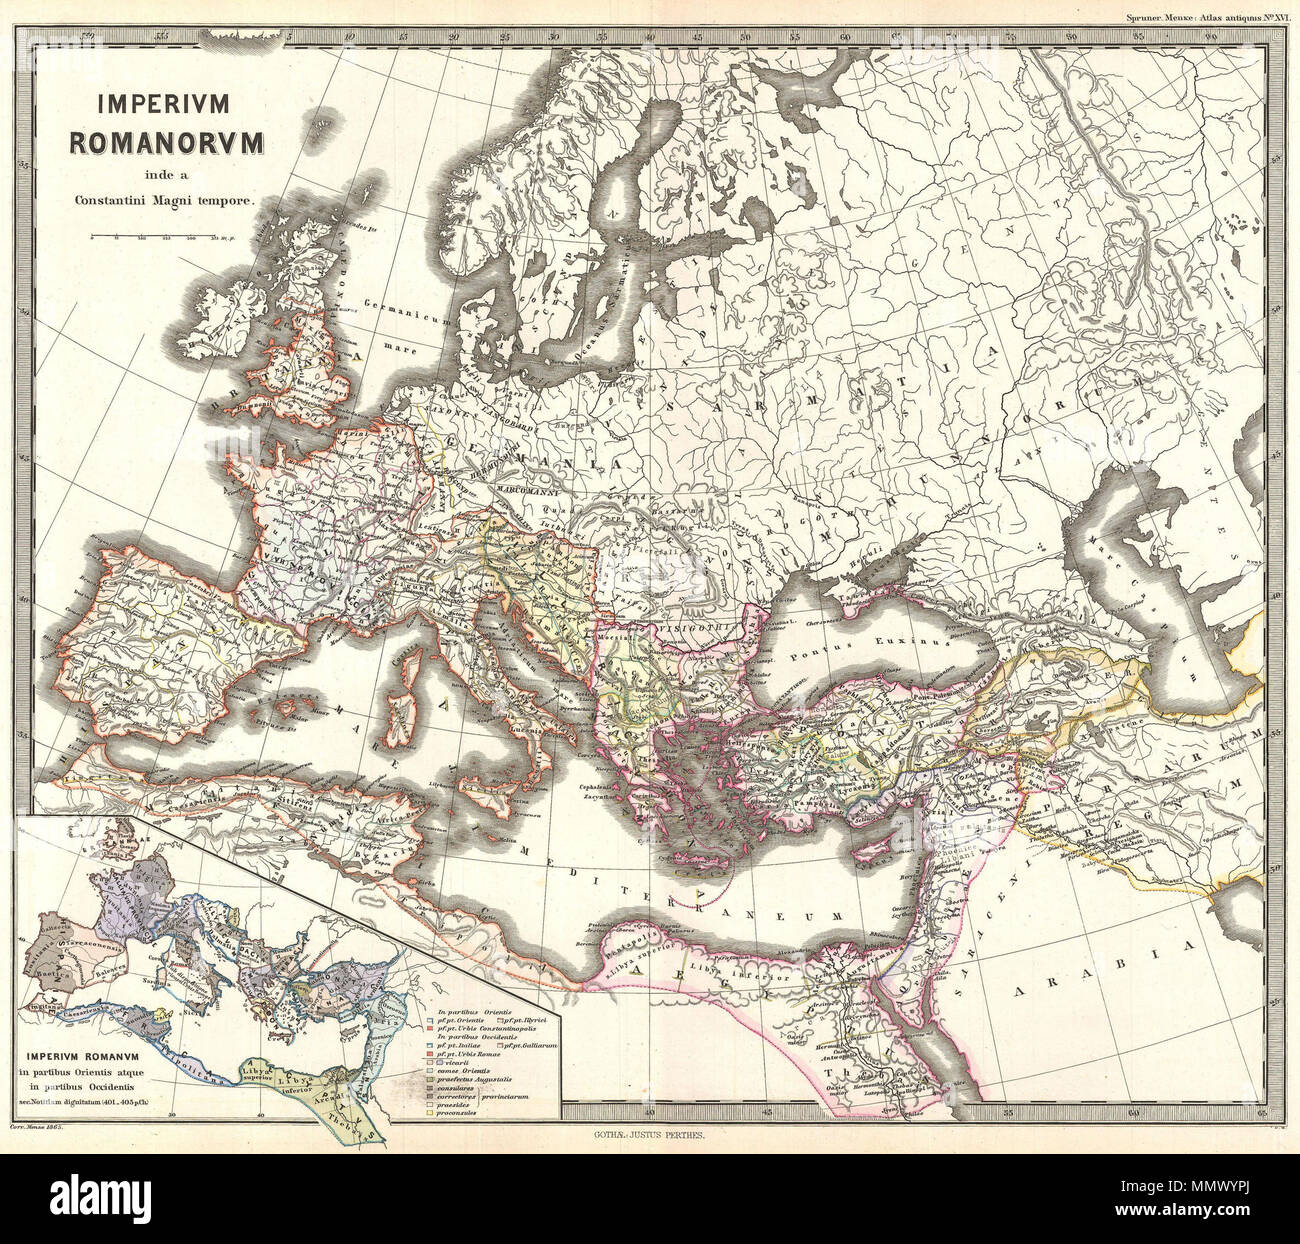 Topographical Europe Africa Map Stock Photos & Topographical ...